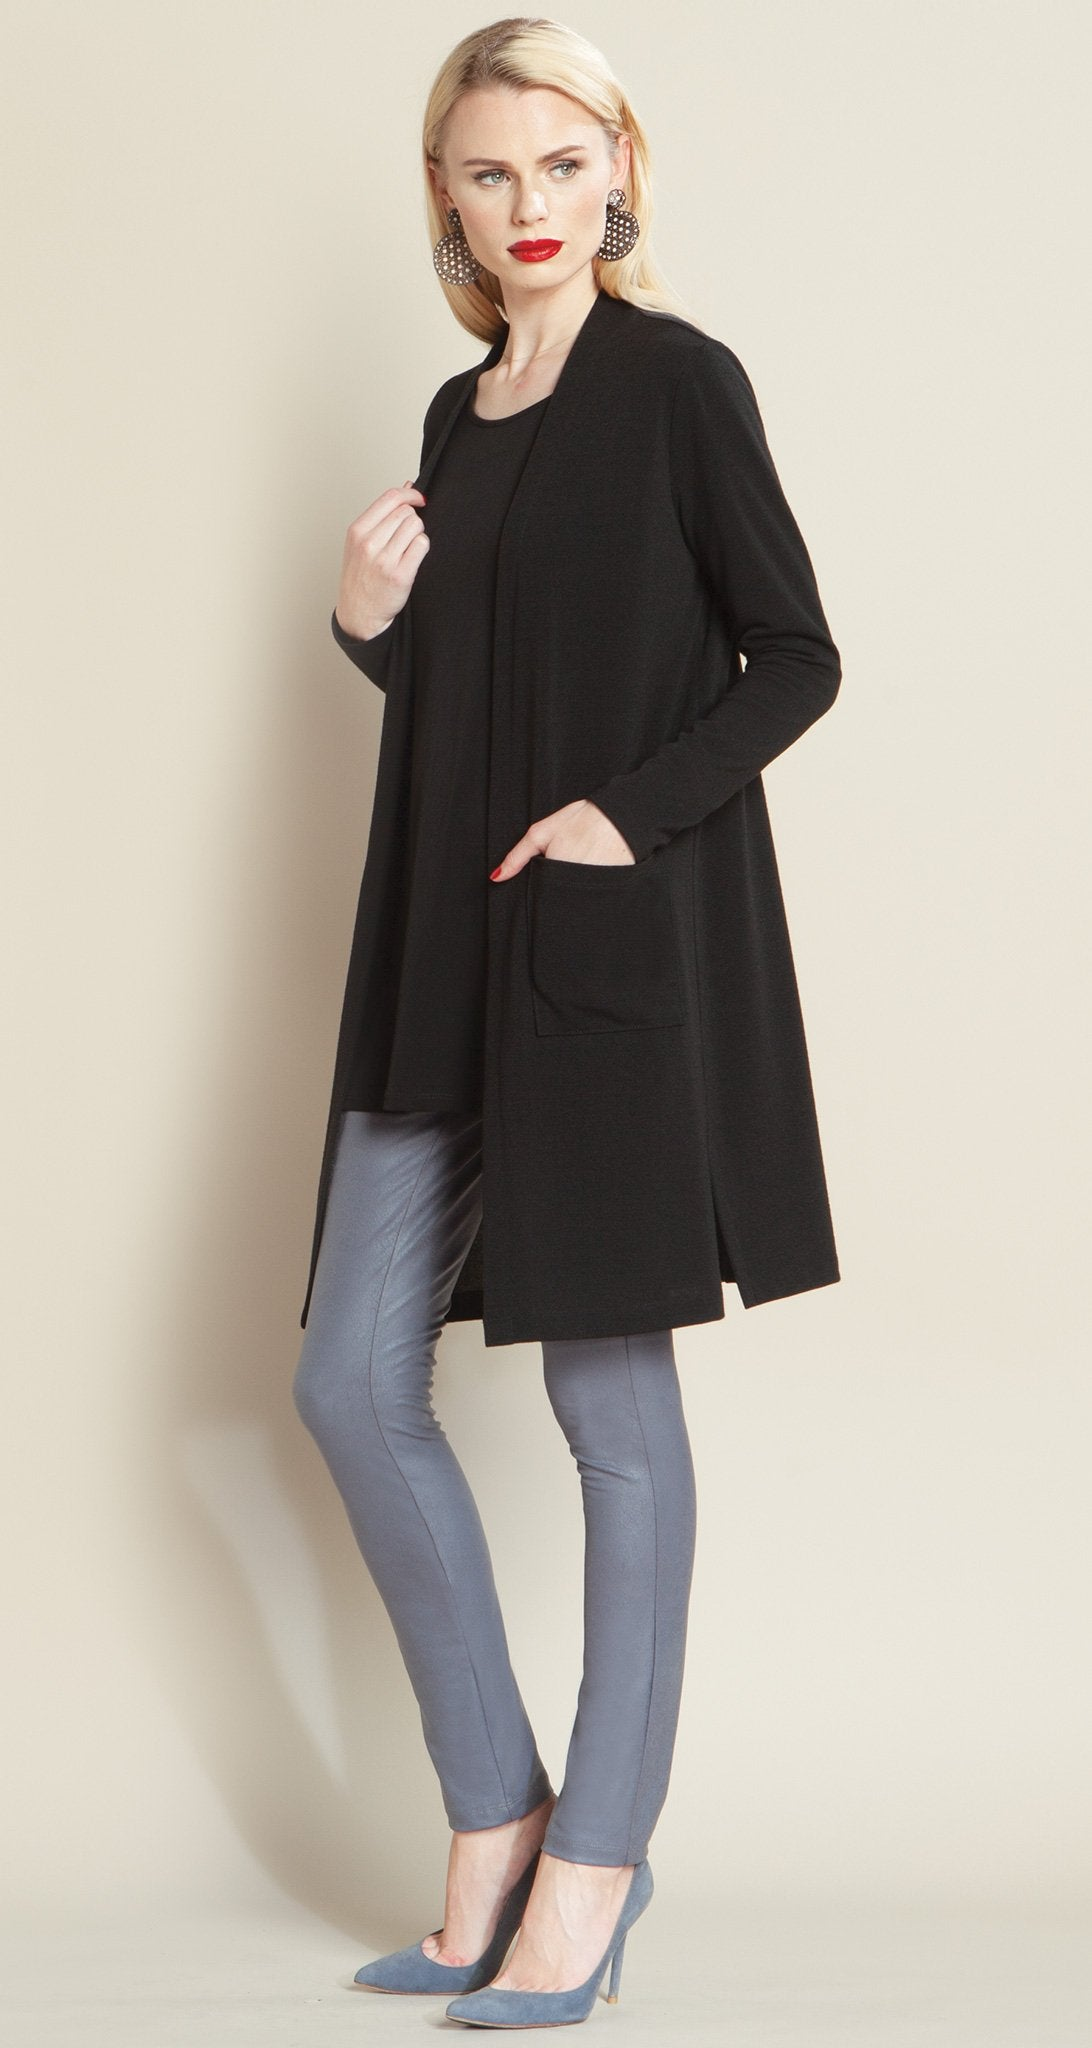 Modern Pocket Sweater Cardigan - Black - Clara Sunwoo